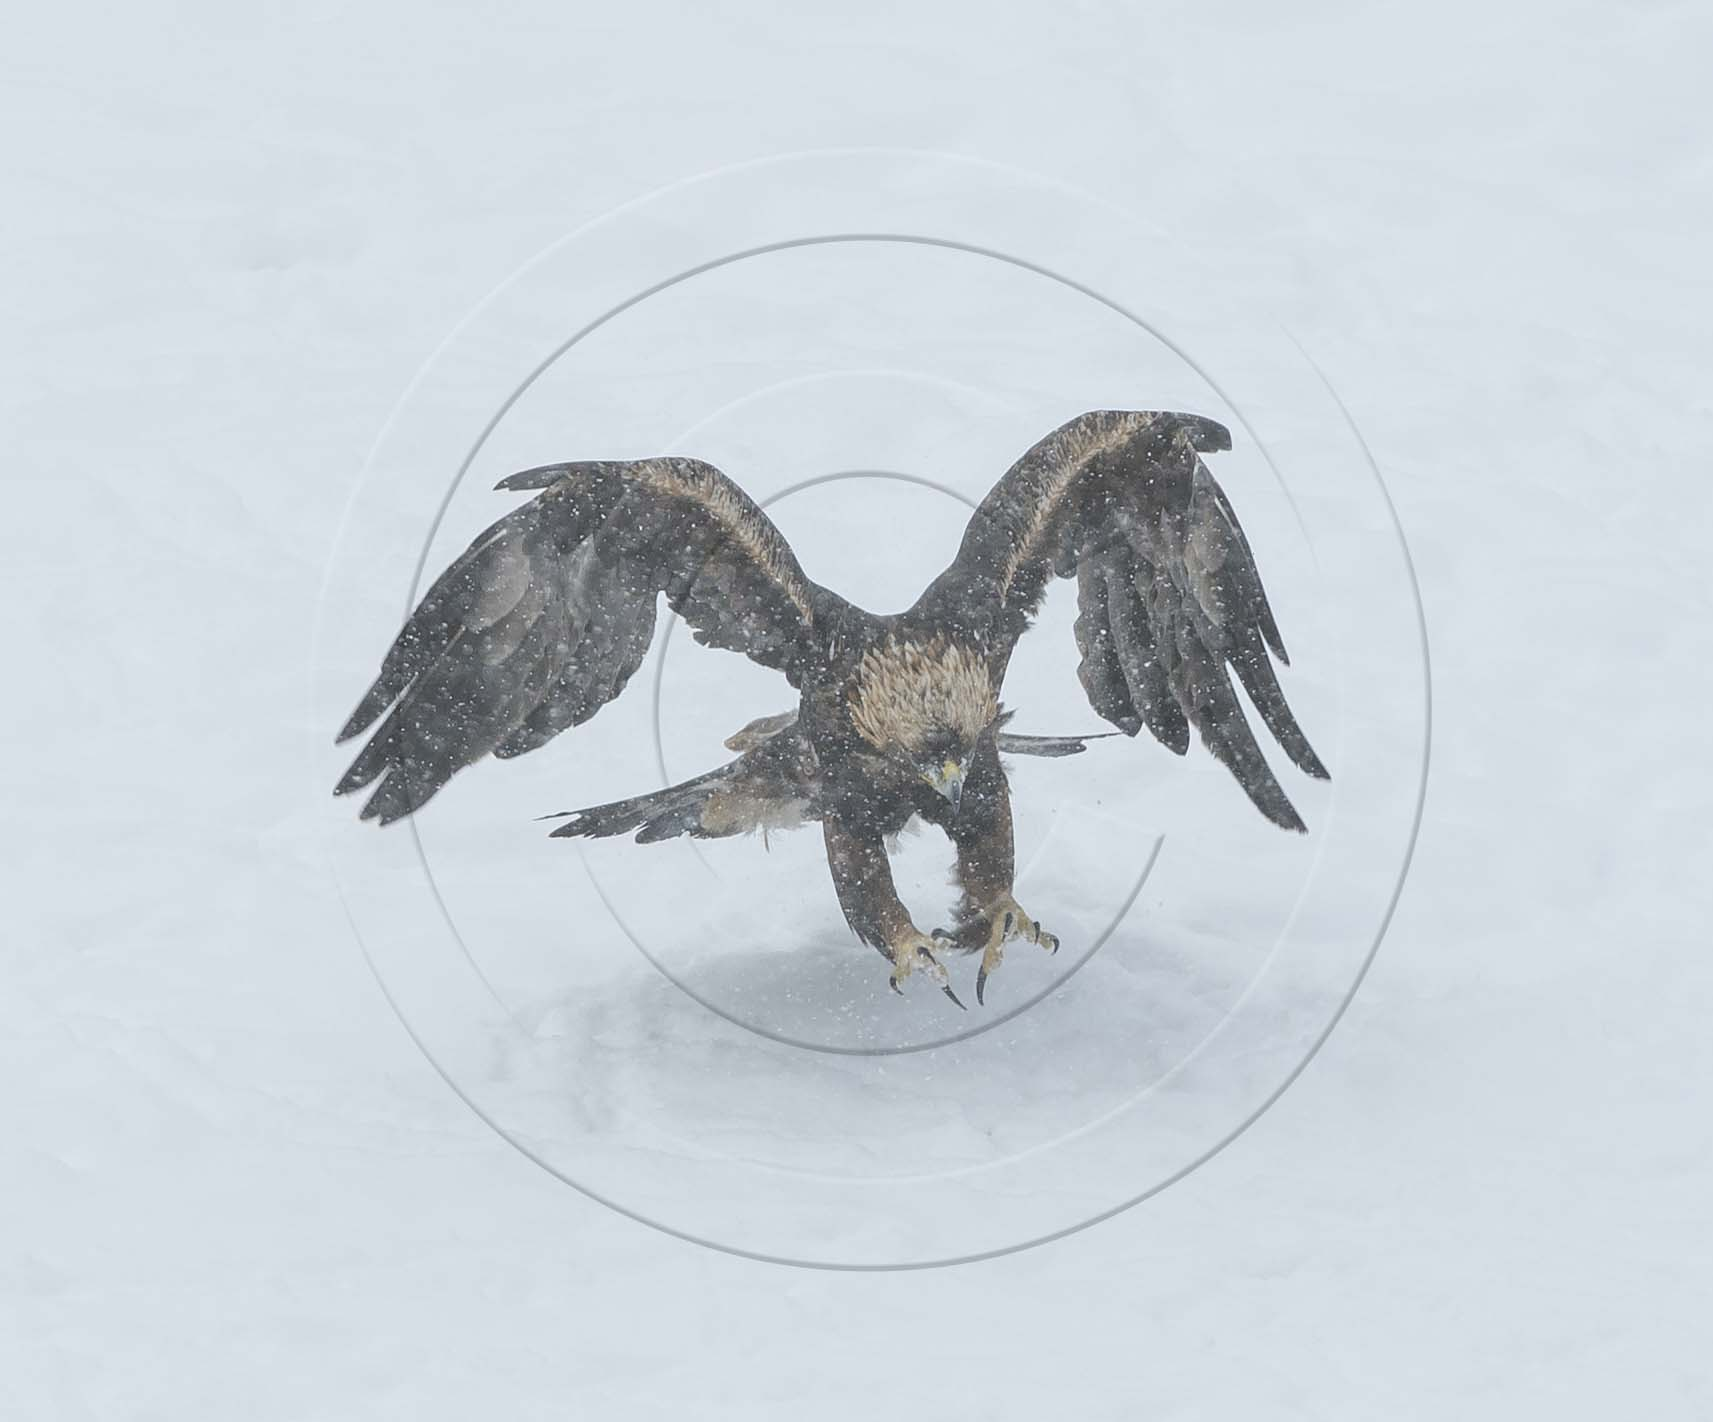 GOLDEN EAGLE WINGSPREAD-1